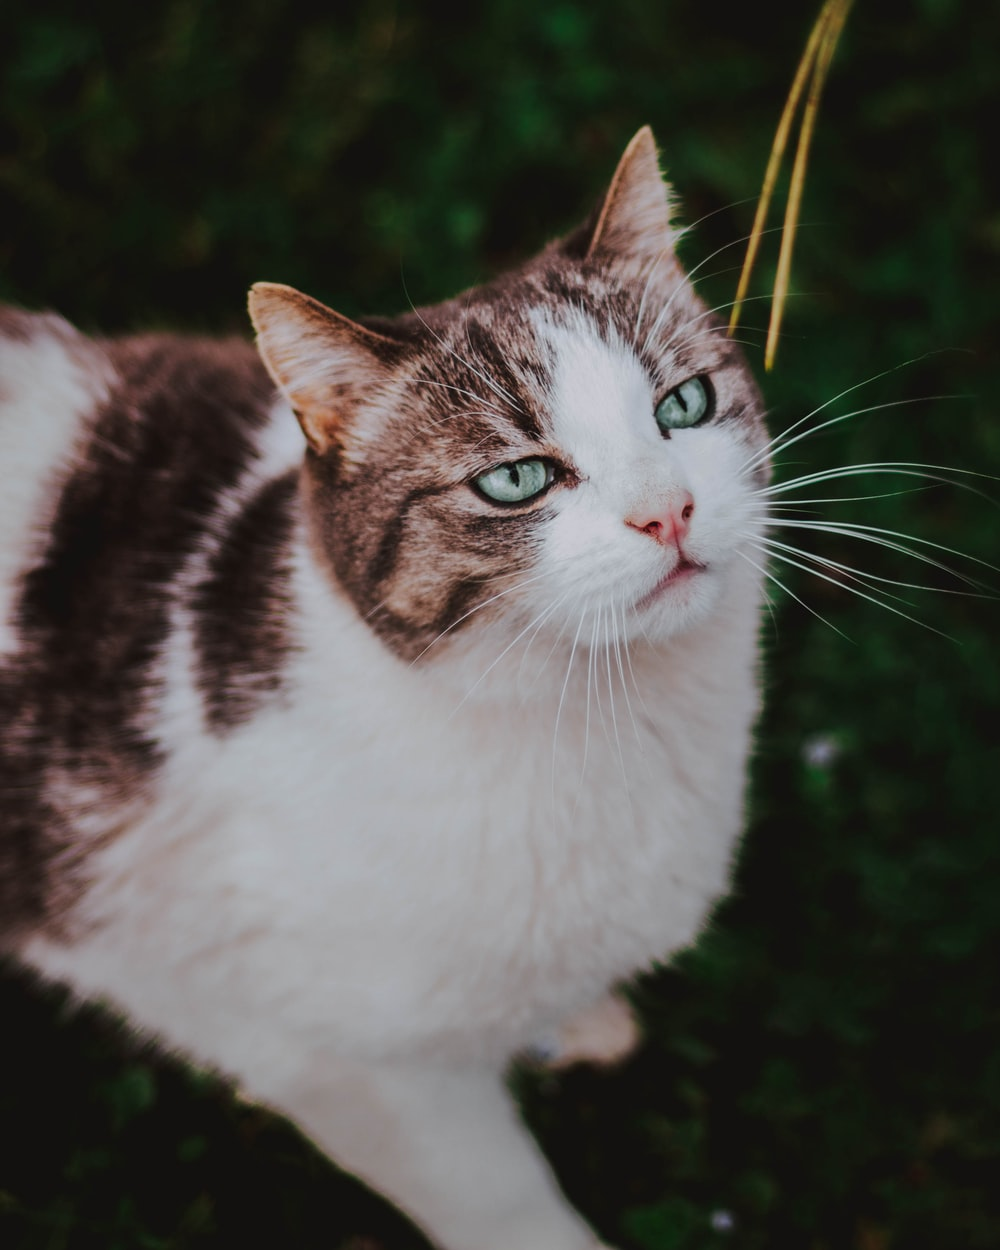 view of short-haired brown and white cat